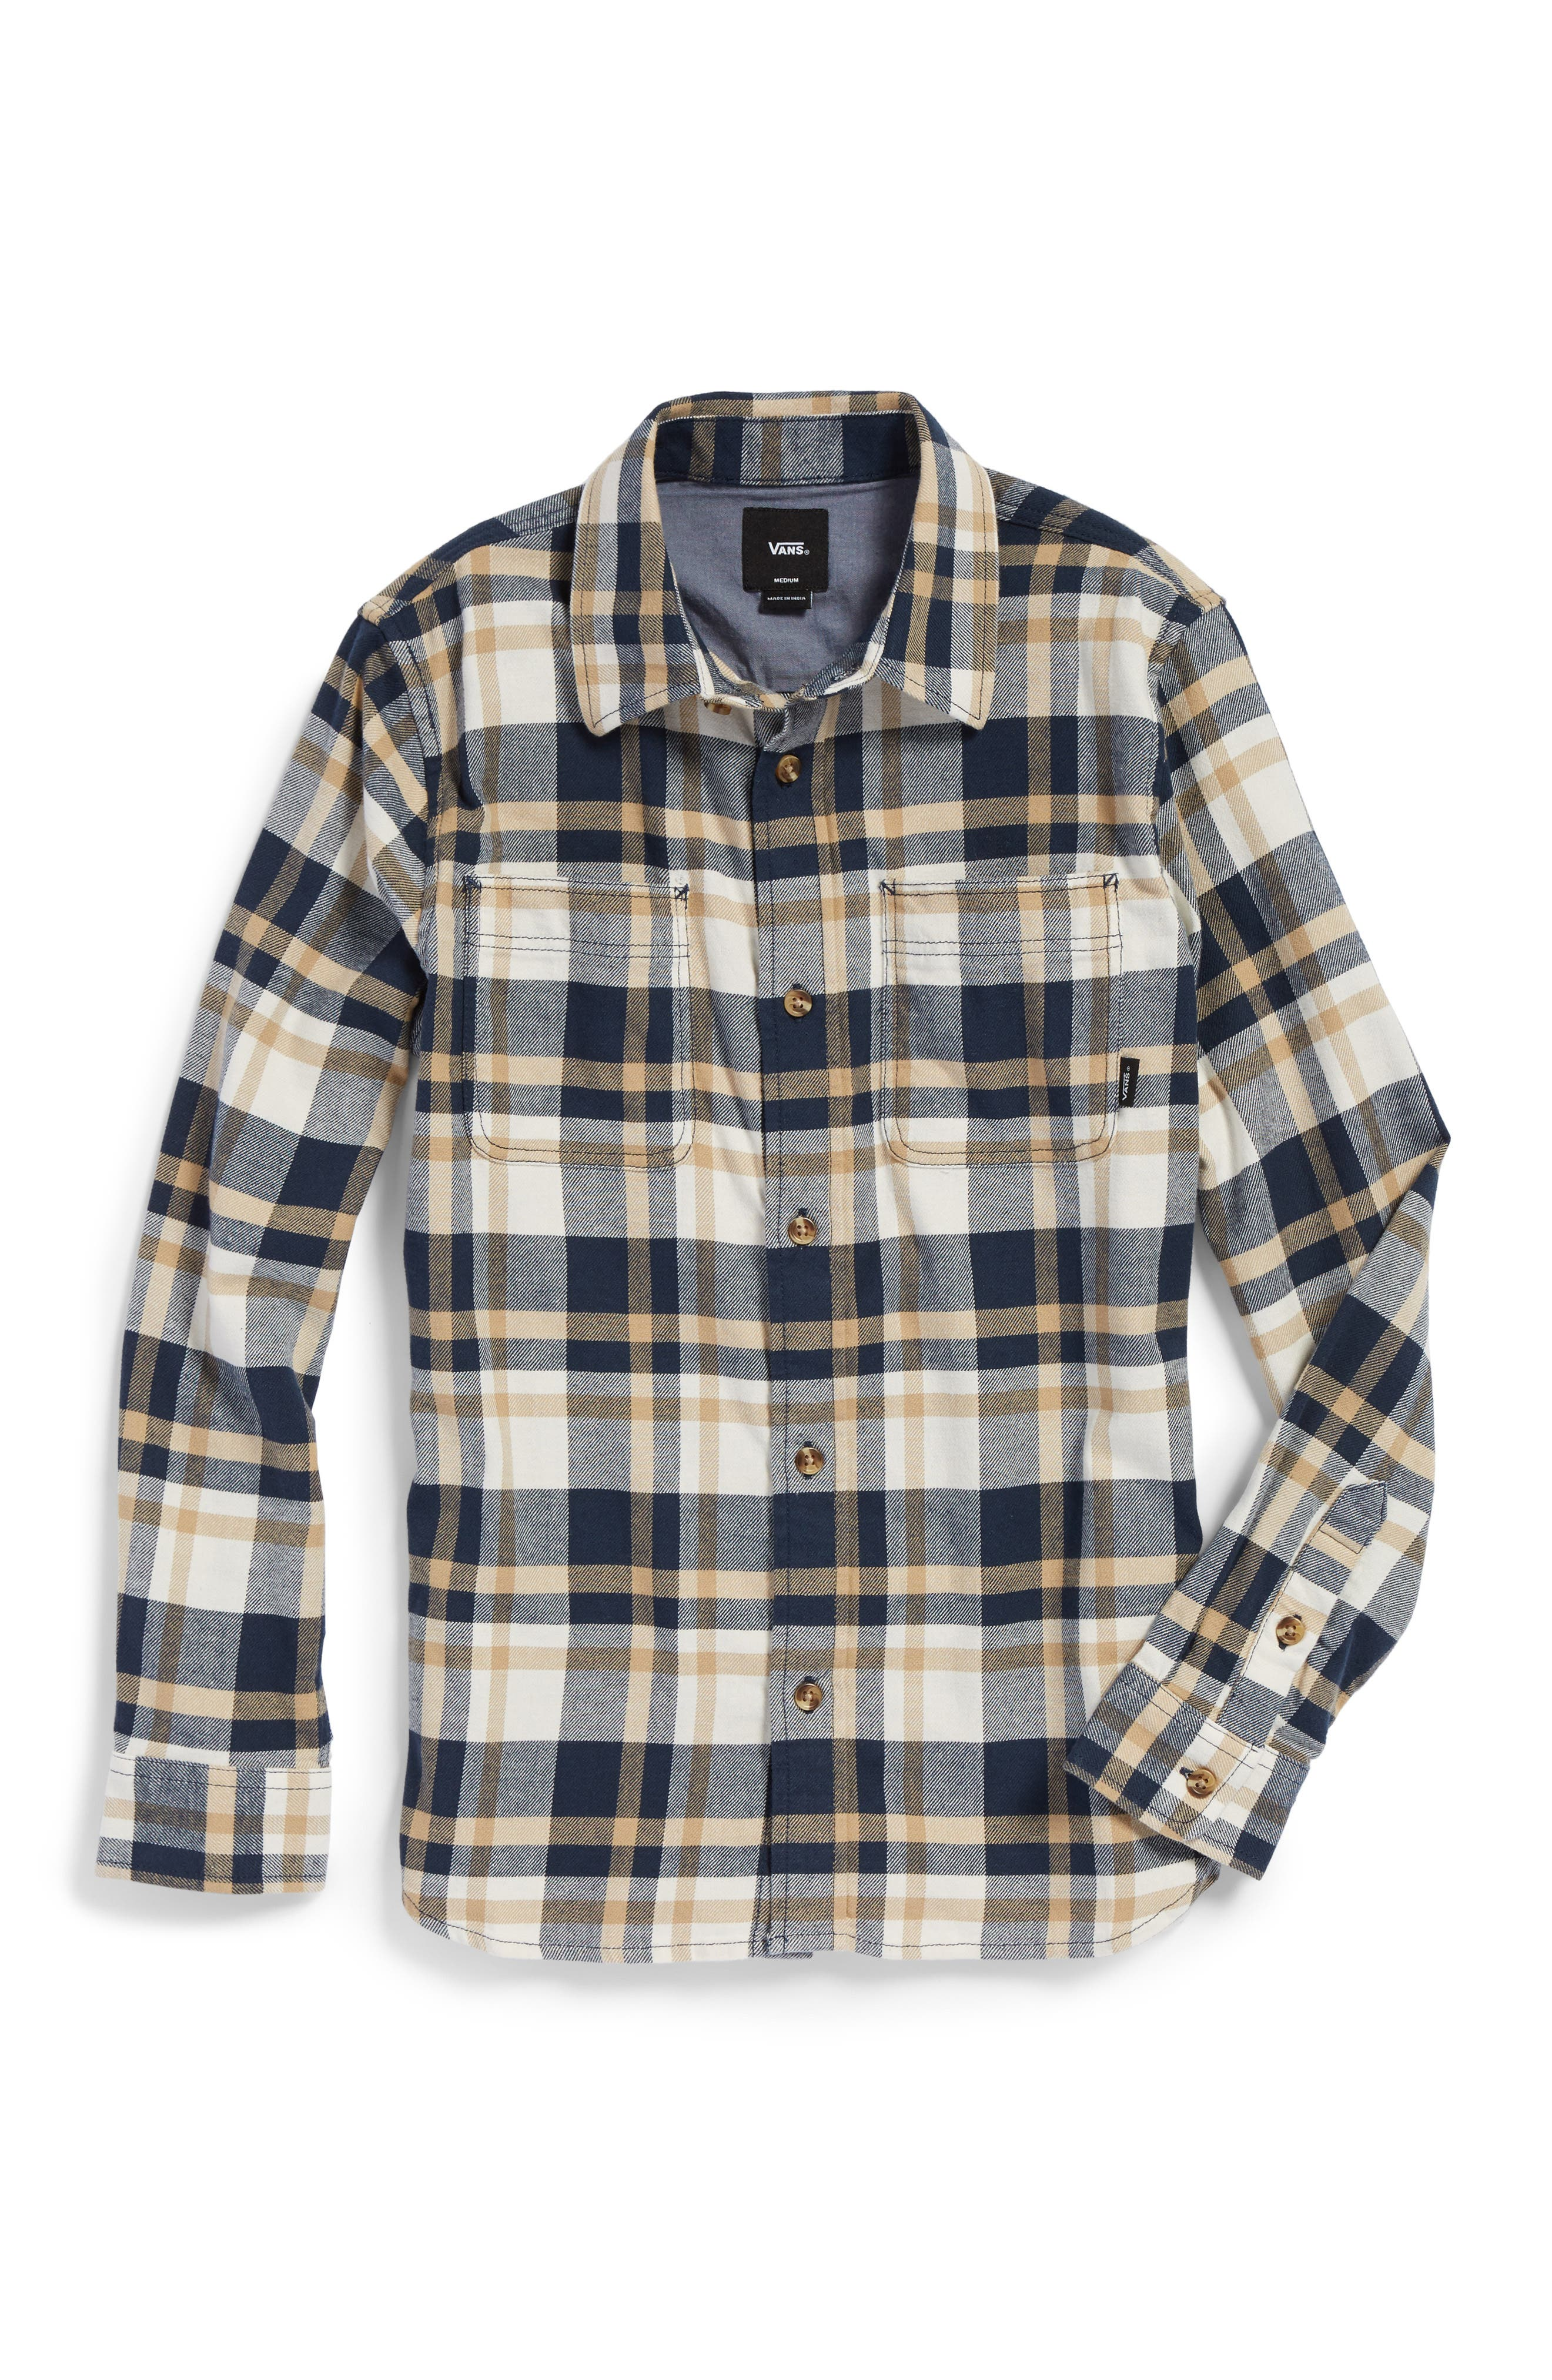 Banfield Plaid Flannel Shirt,                             Main thumbnail 1, color,                             Dress Blues/ Marshmallow